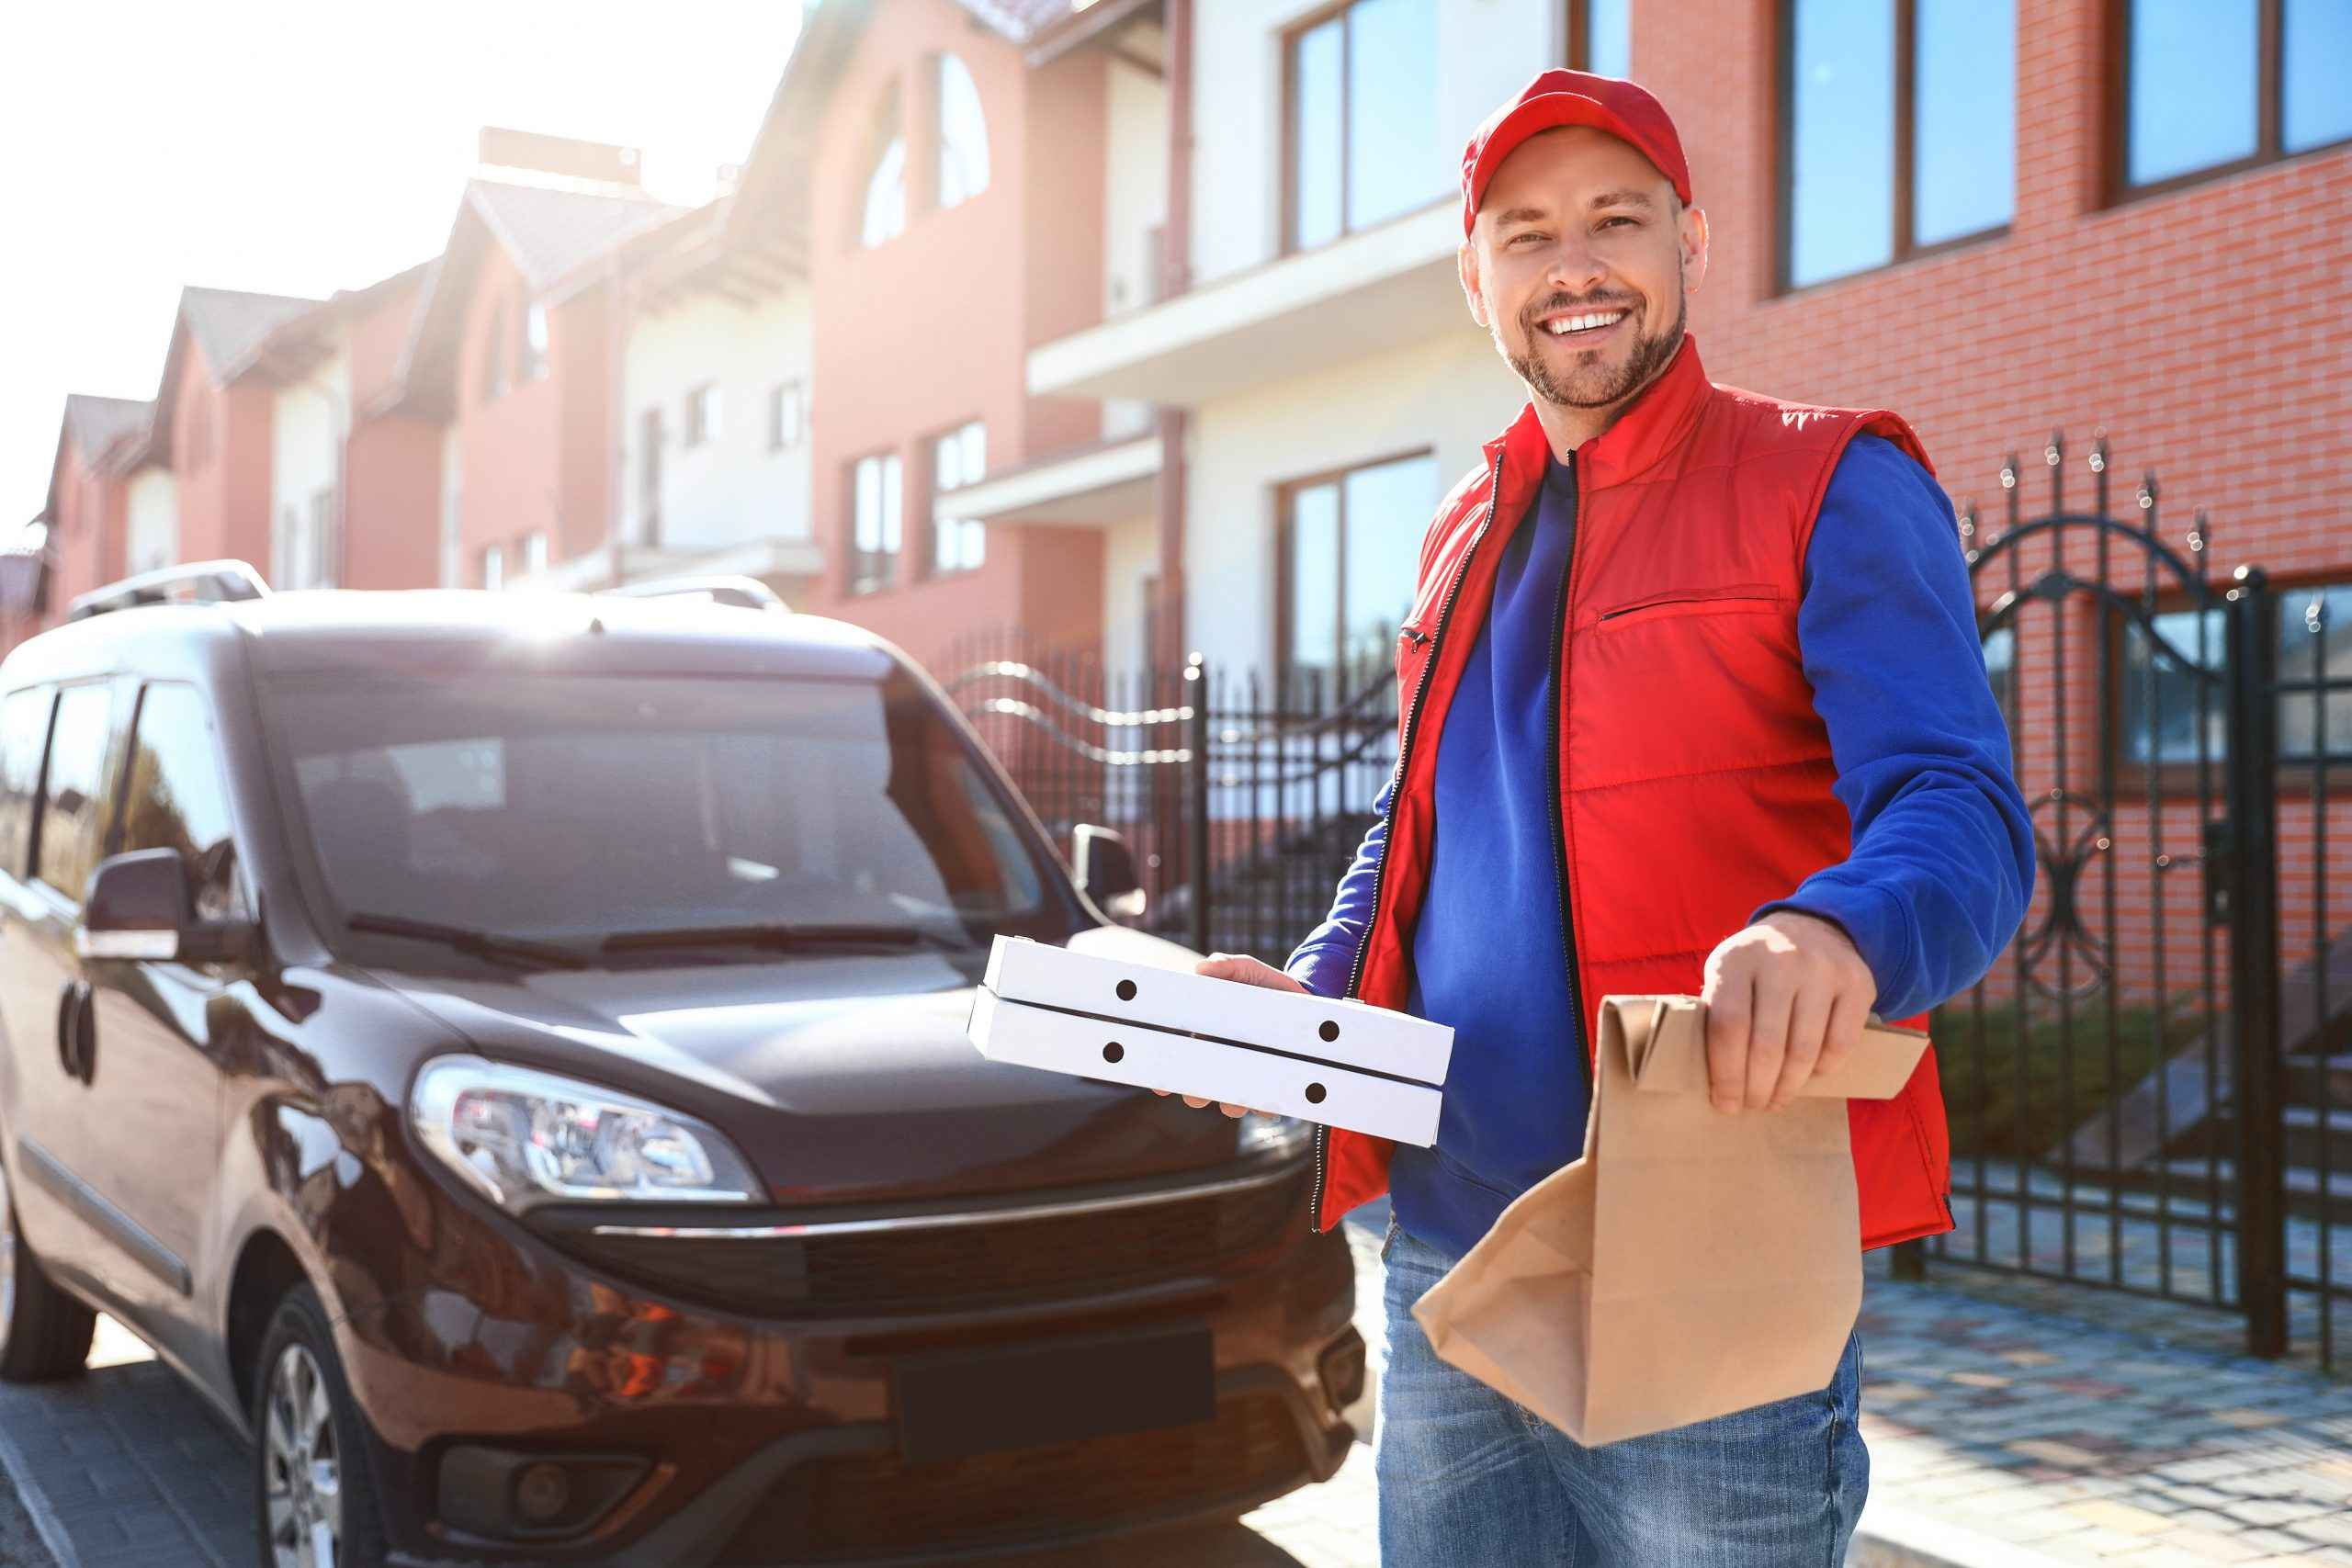 Fast food delivery driver with pizza boxes in hand